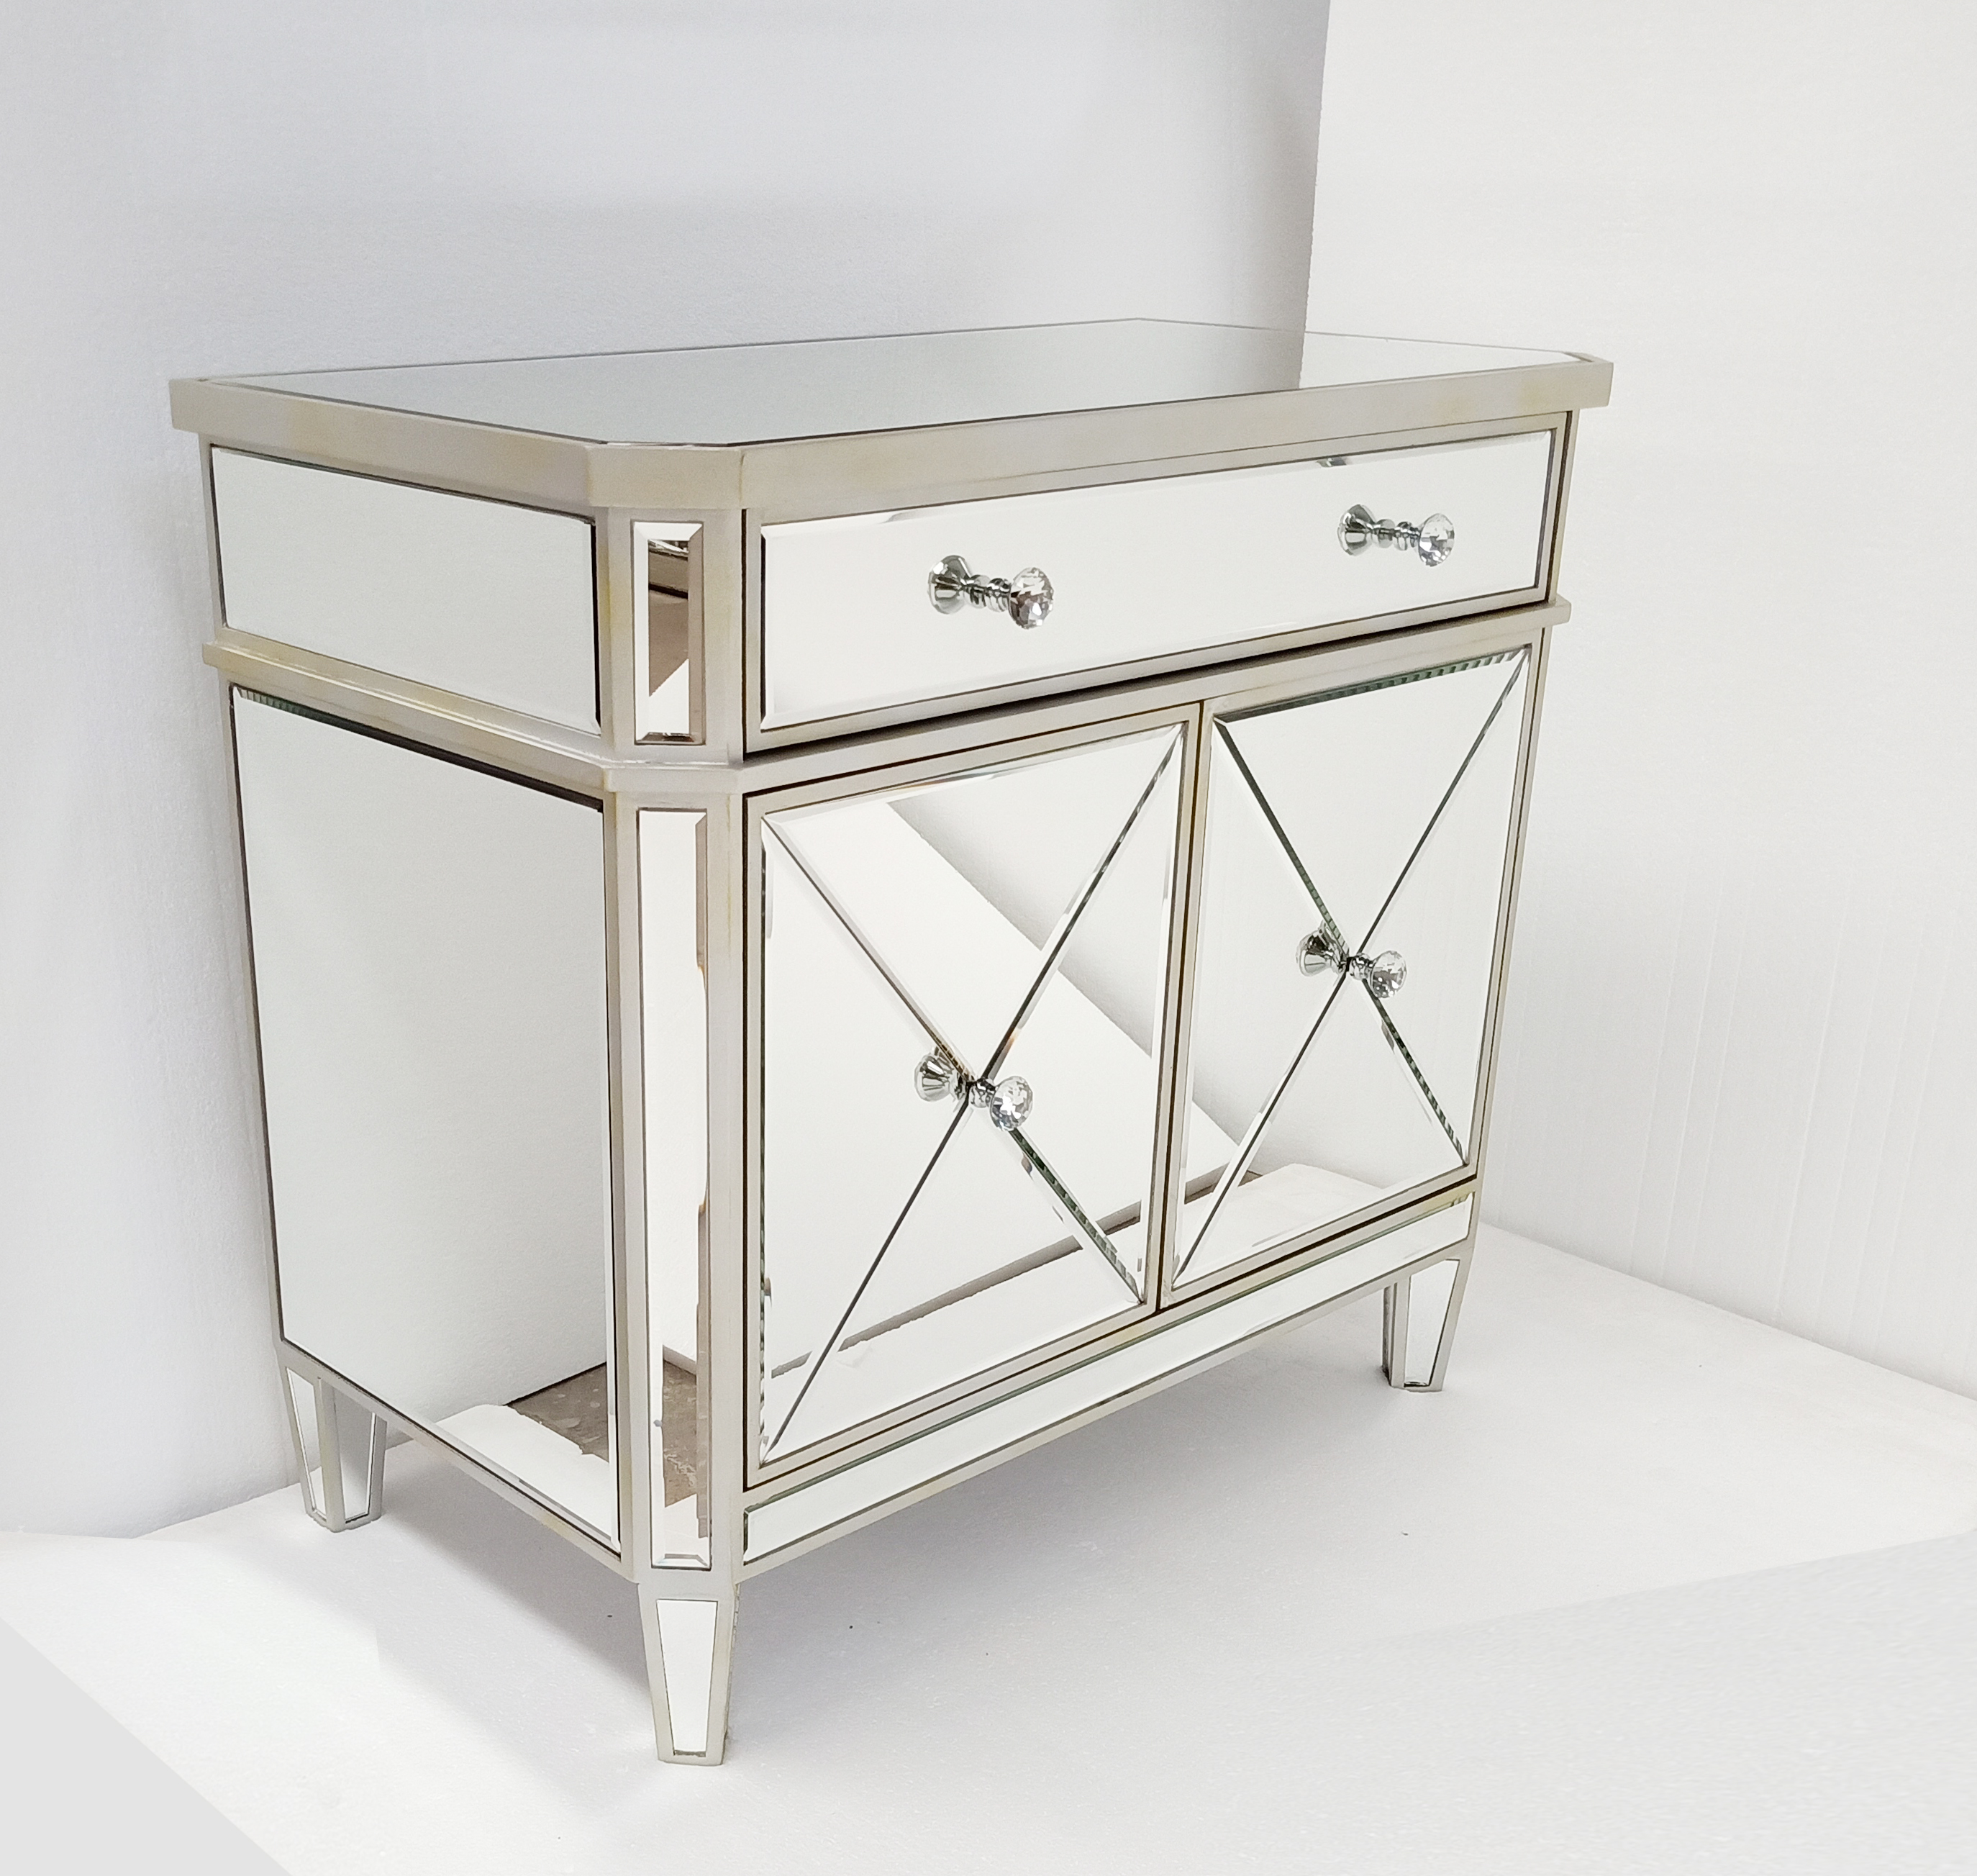 Gold And Silver Wooden Trimming Mirror Door Bedroom Side Table Bed Side Board Furniture Buy Bedroom Mirrored Side Table One Drawer Two Door Mirror Side Board Gold And Silver Trimming Color Side Table